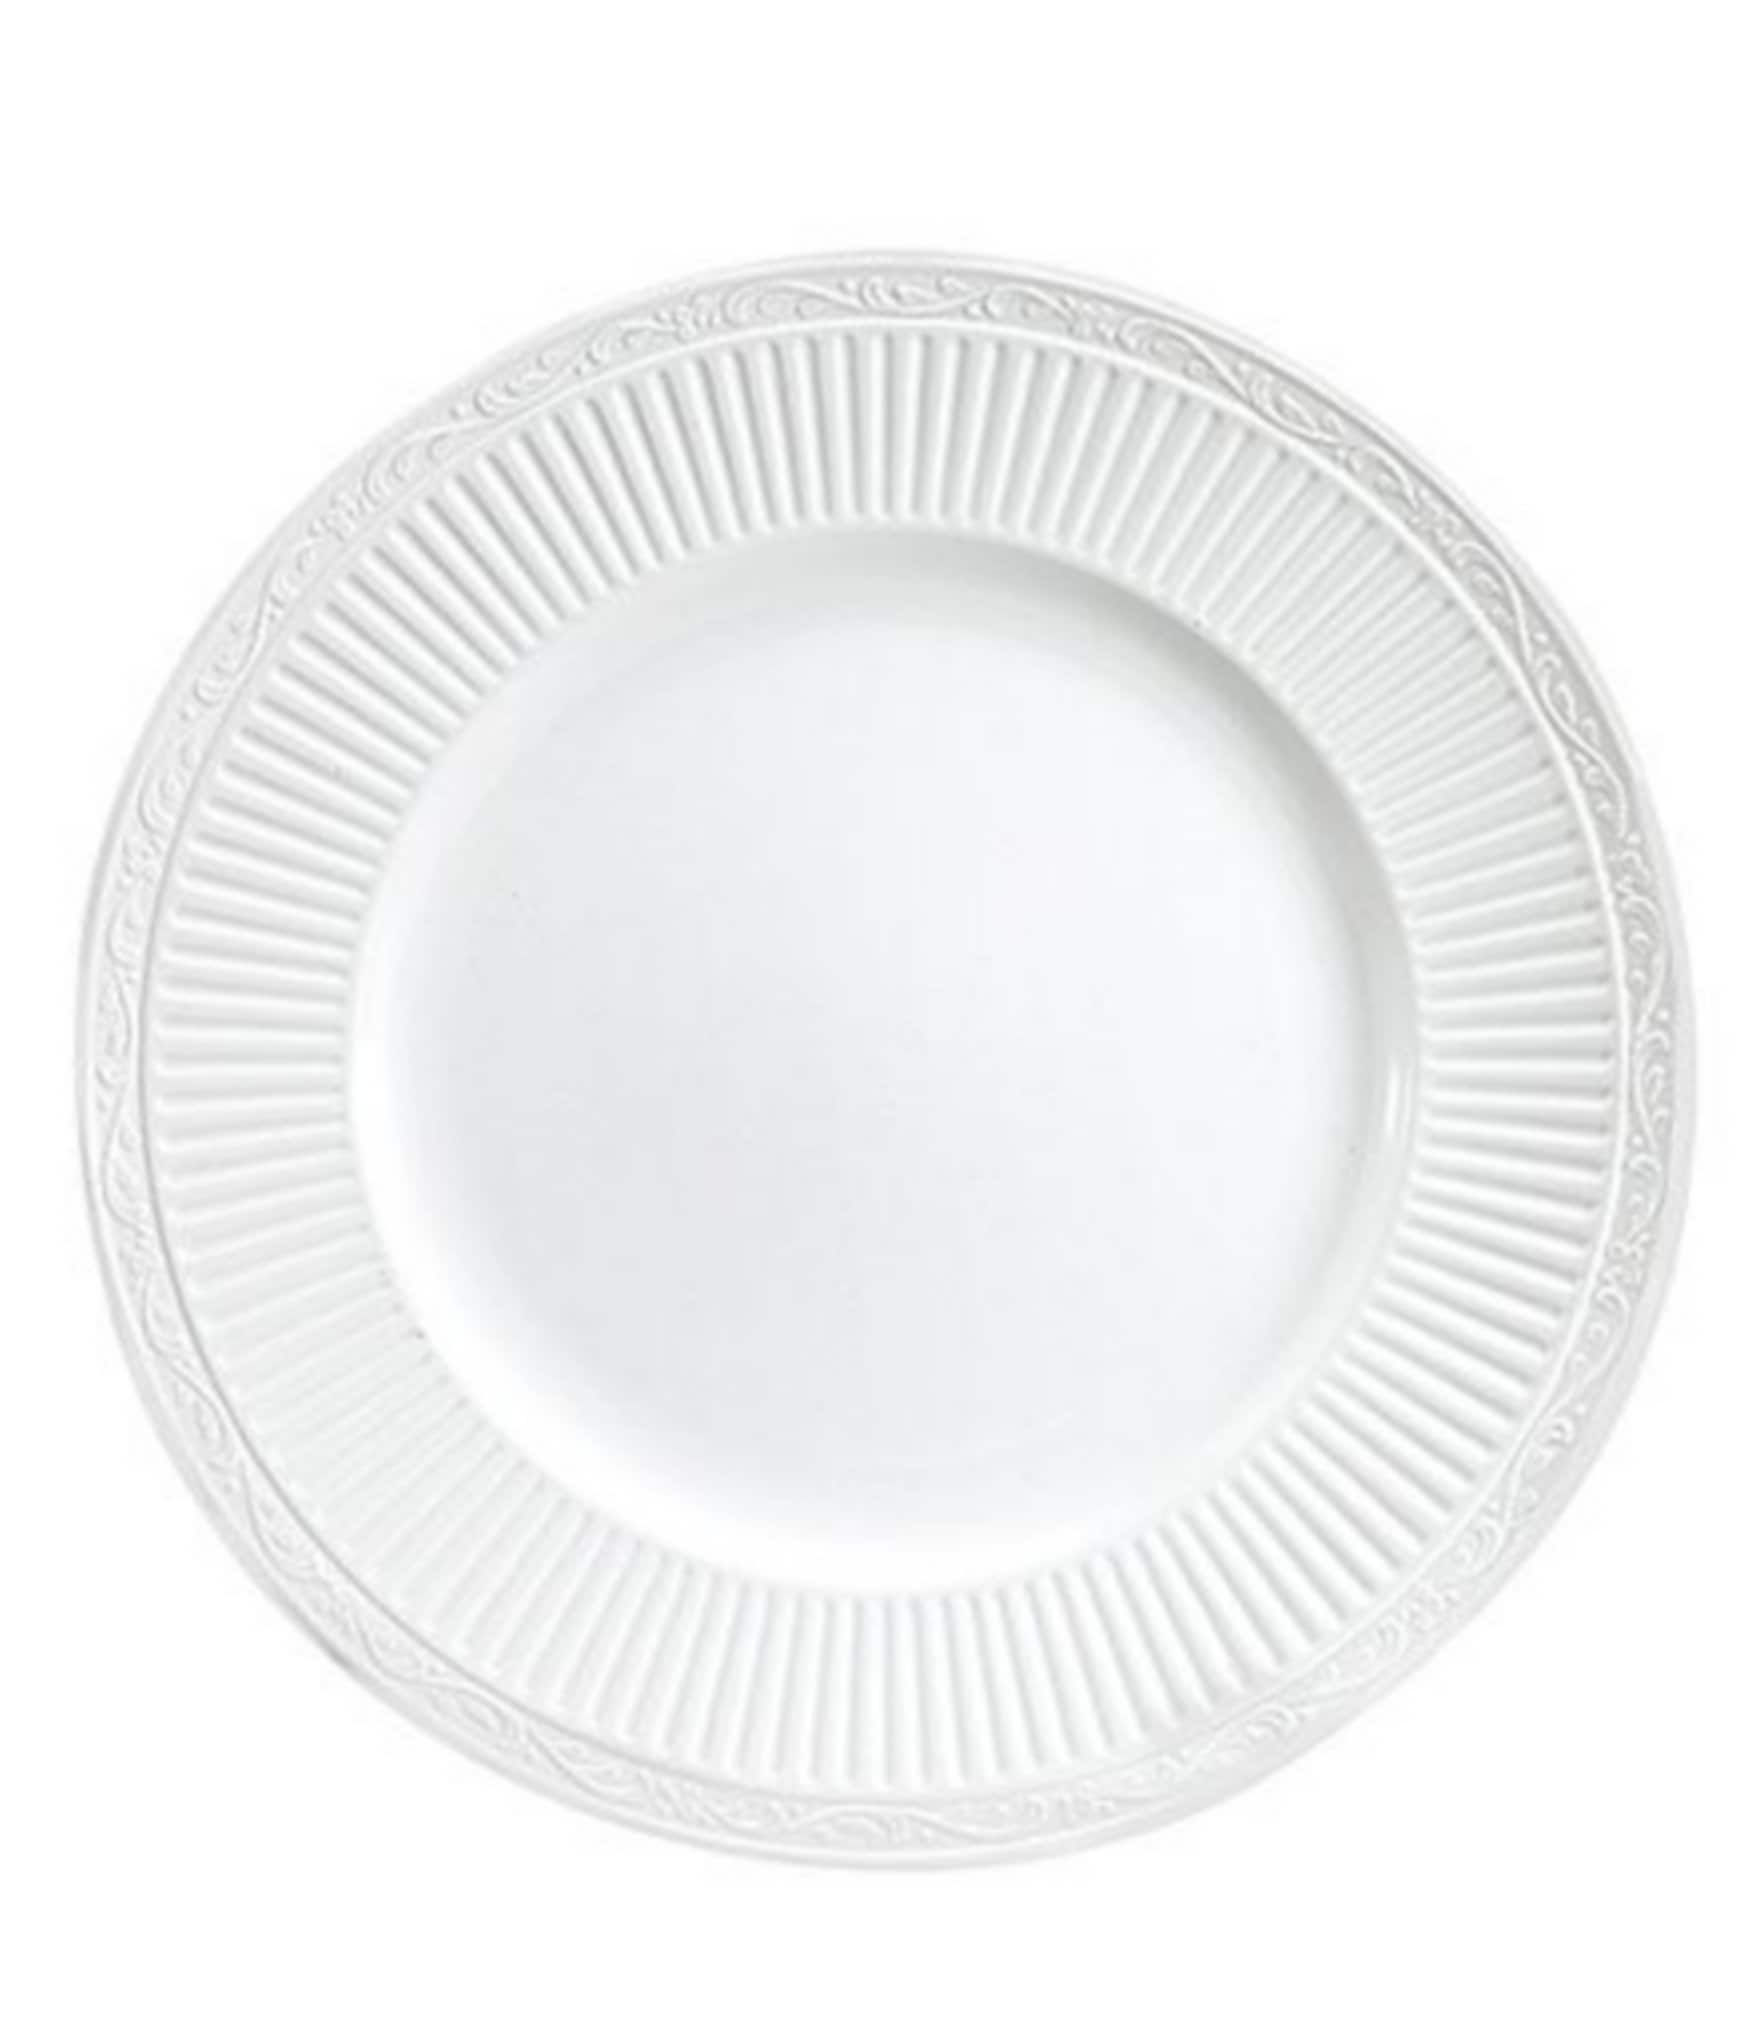 sc 1 st  Dillardu0027s : mikasa english countryside dinner plate - pezcame.com